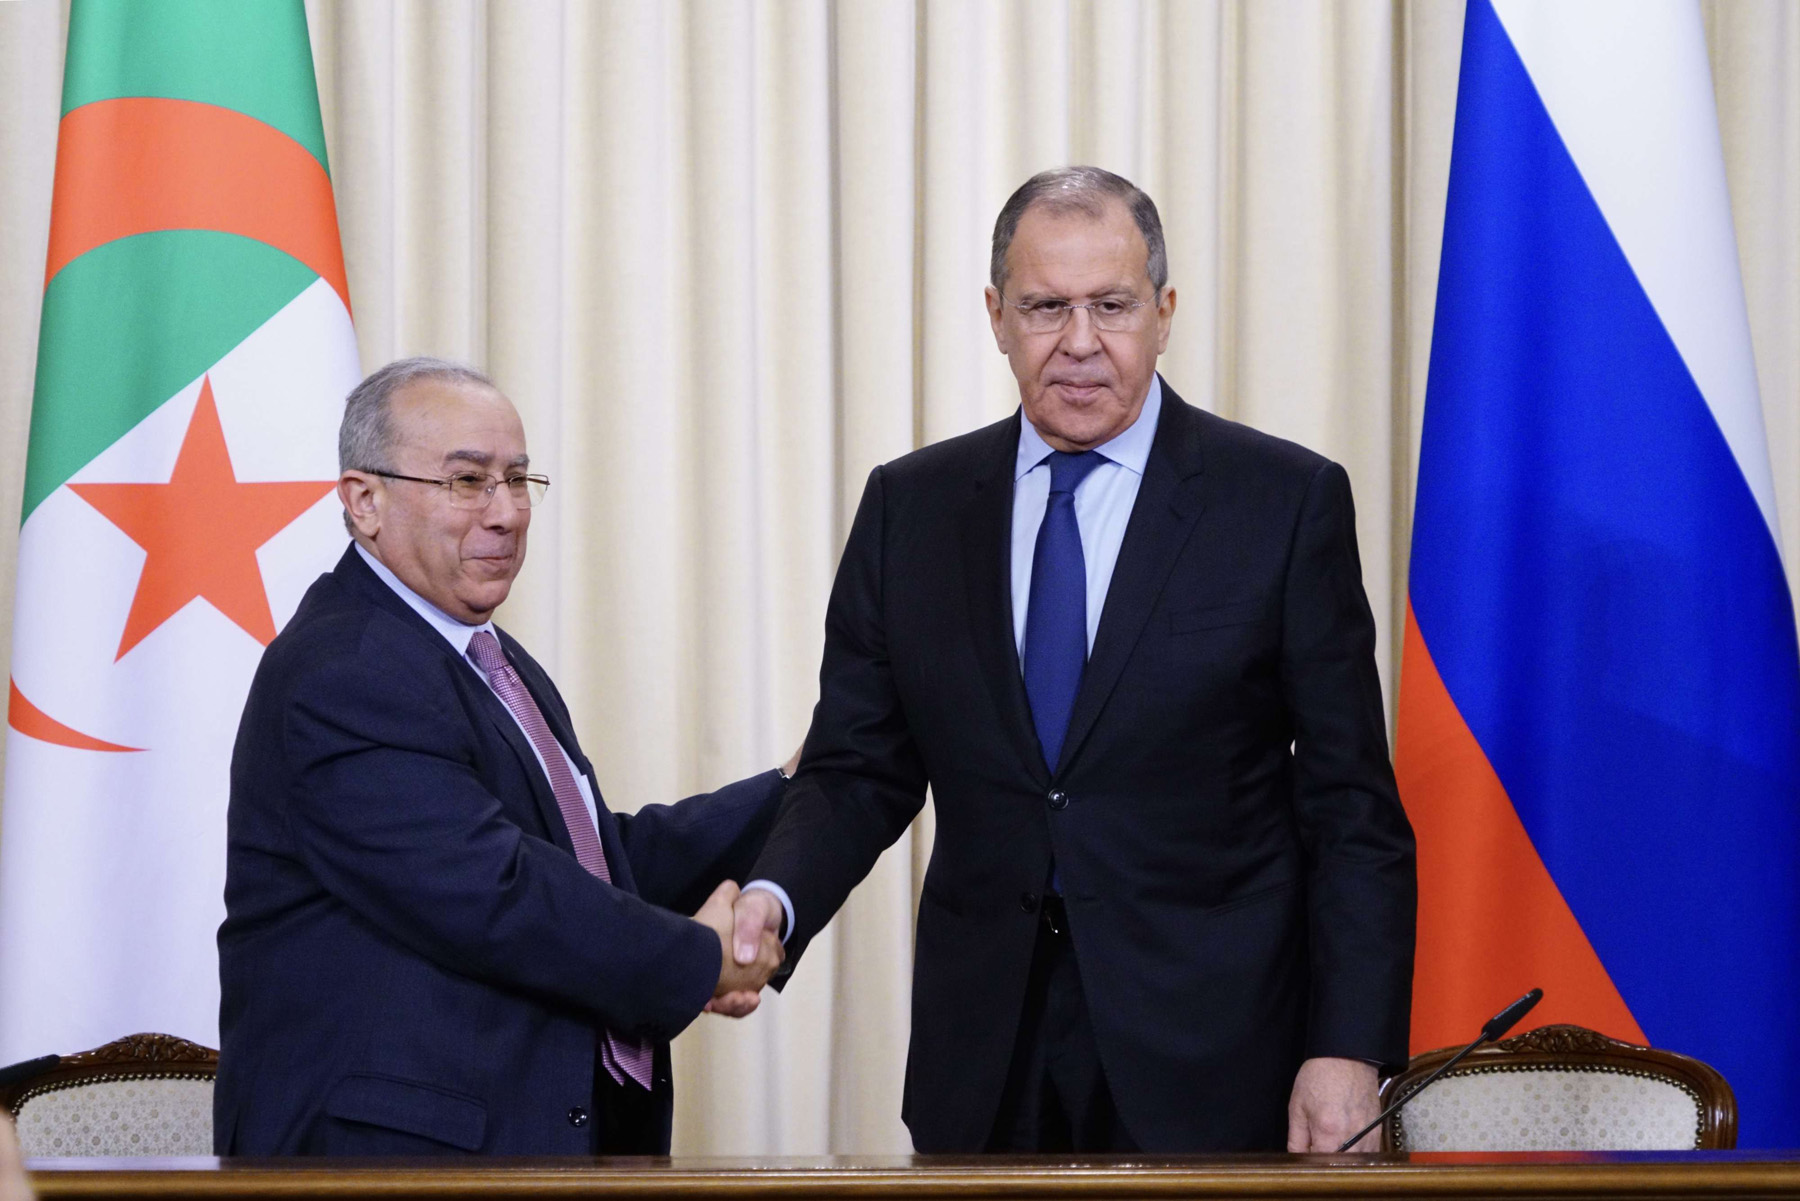 Pleading case abroad. Russian Foreign Minister Sergei Lavrov (R) meets with Algerian Foreign Minister Ramtane Lamamra in Moscow, March 19. (DPA)